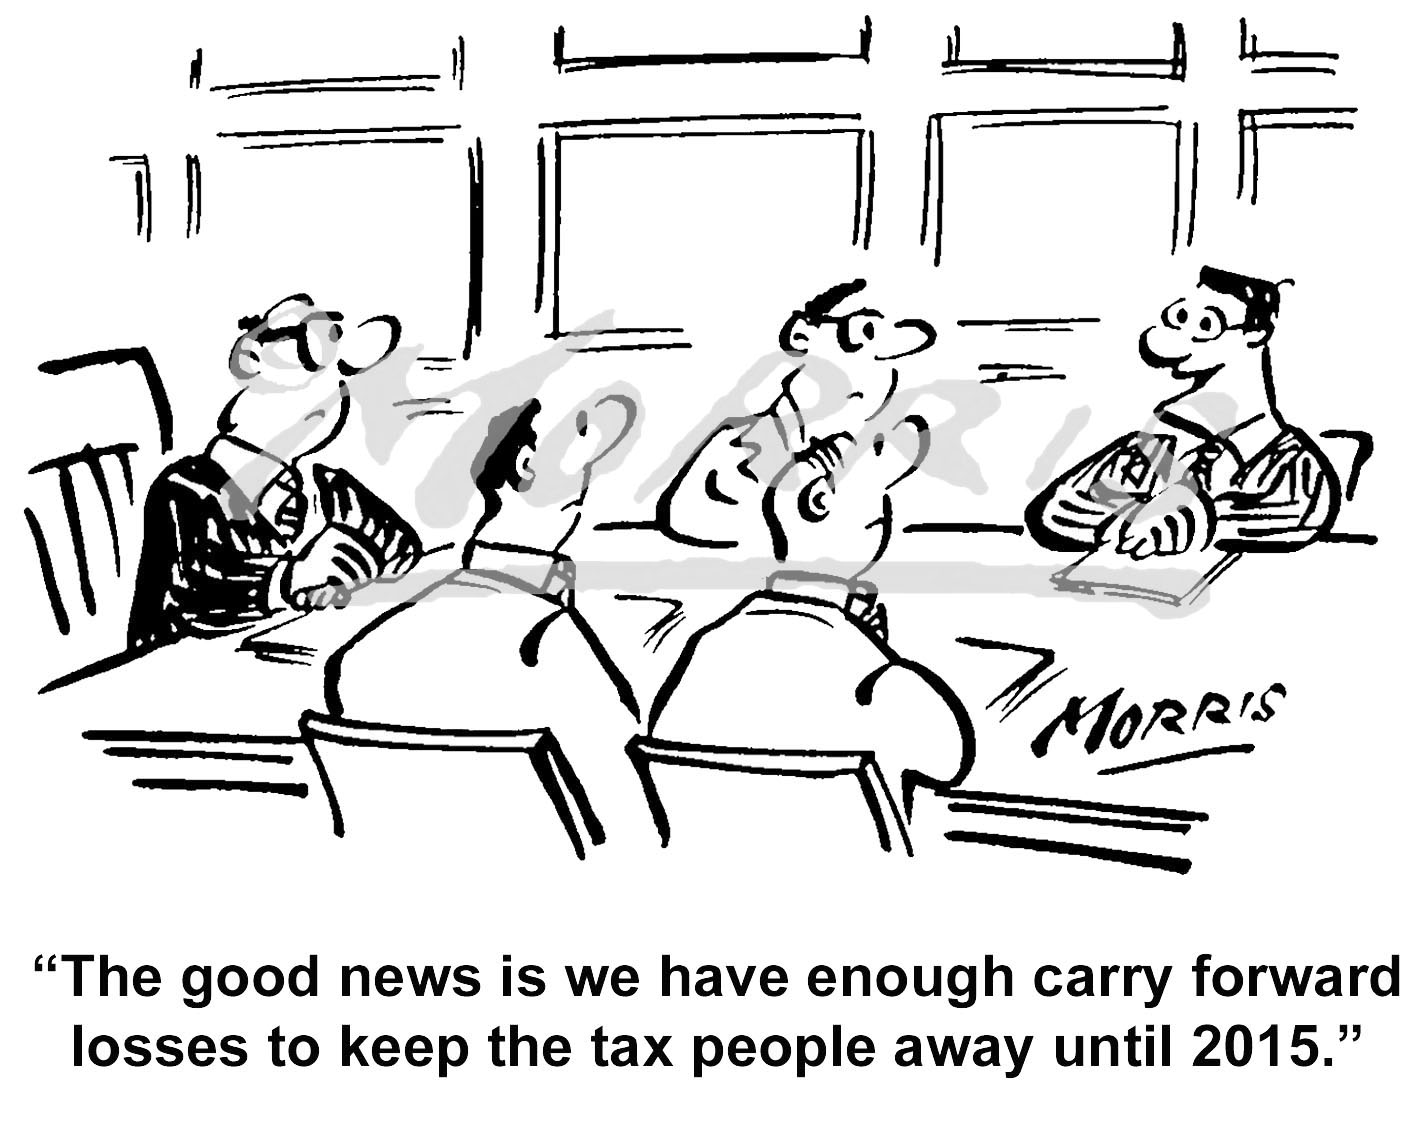 Boardroom meeting tax audit cartoon Ref: 1499bw